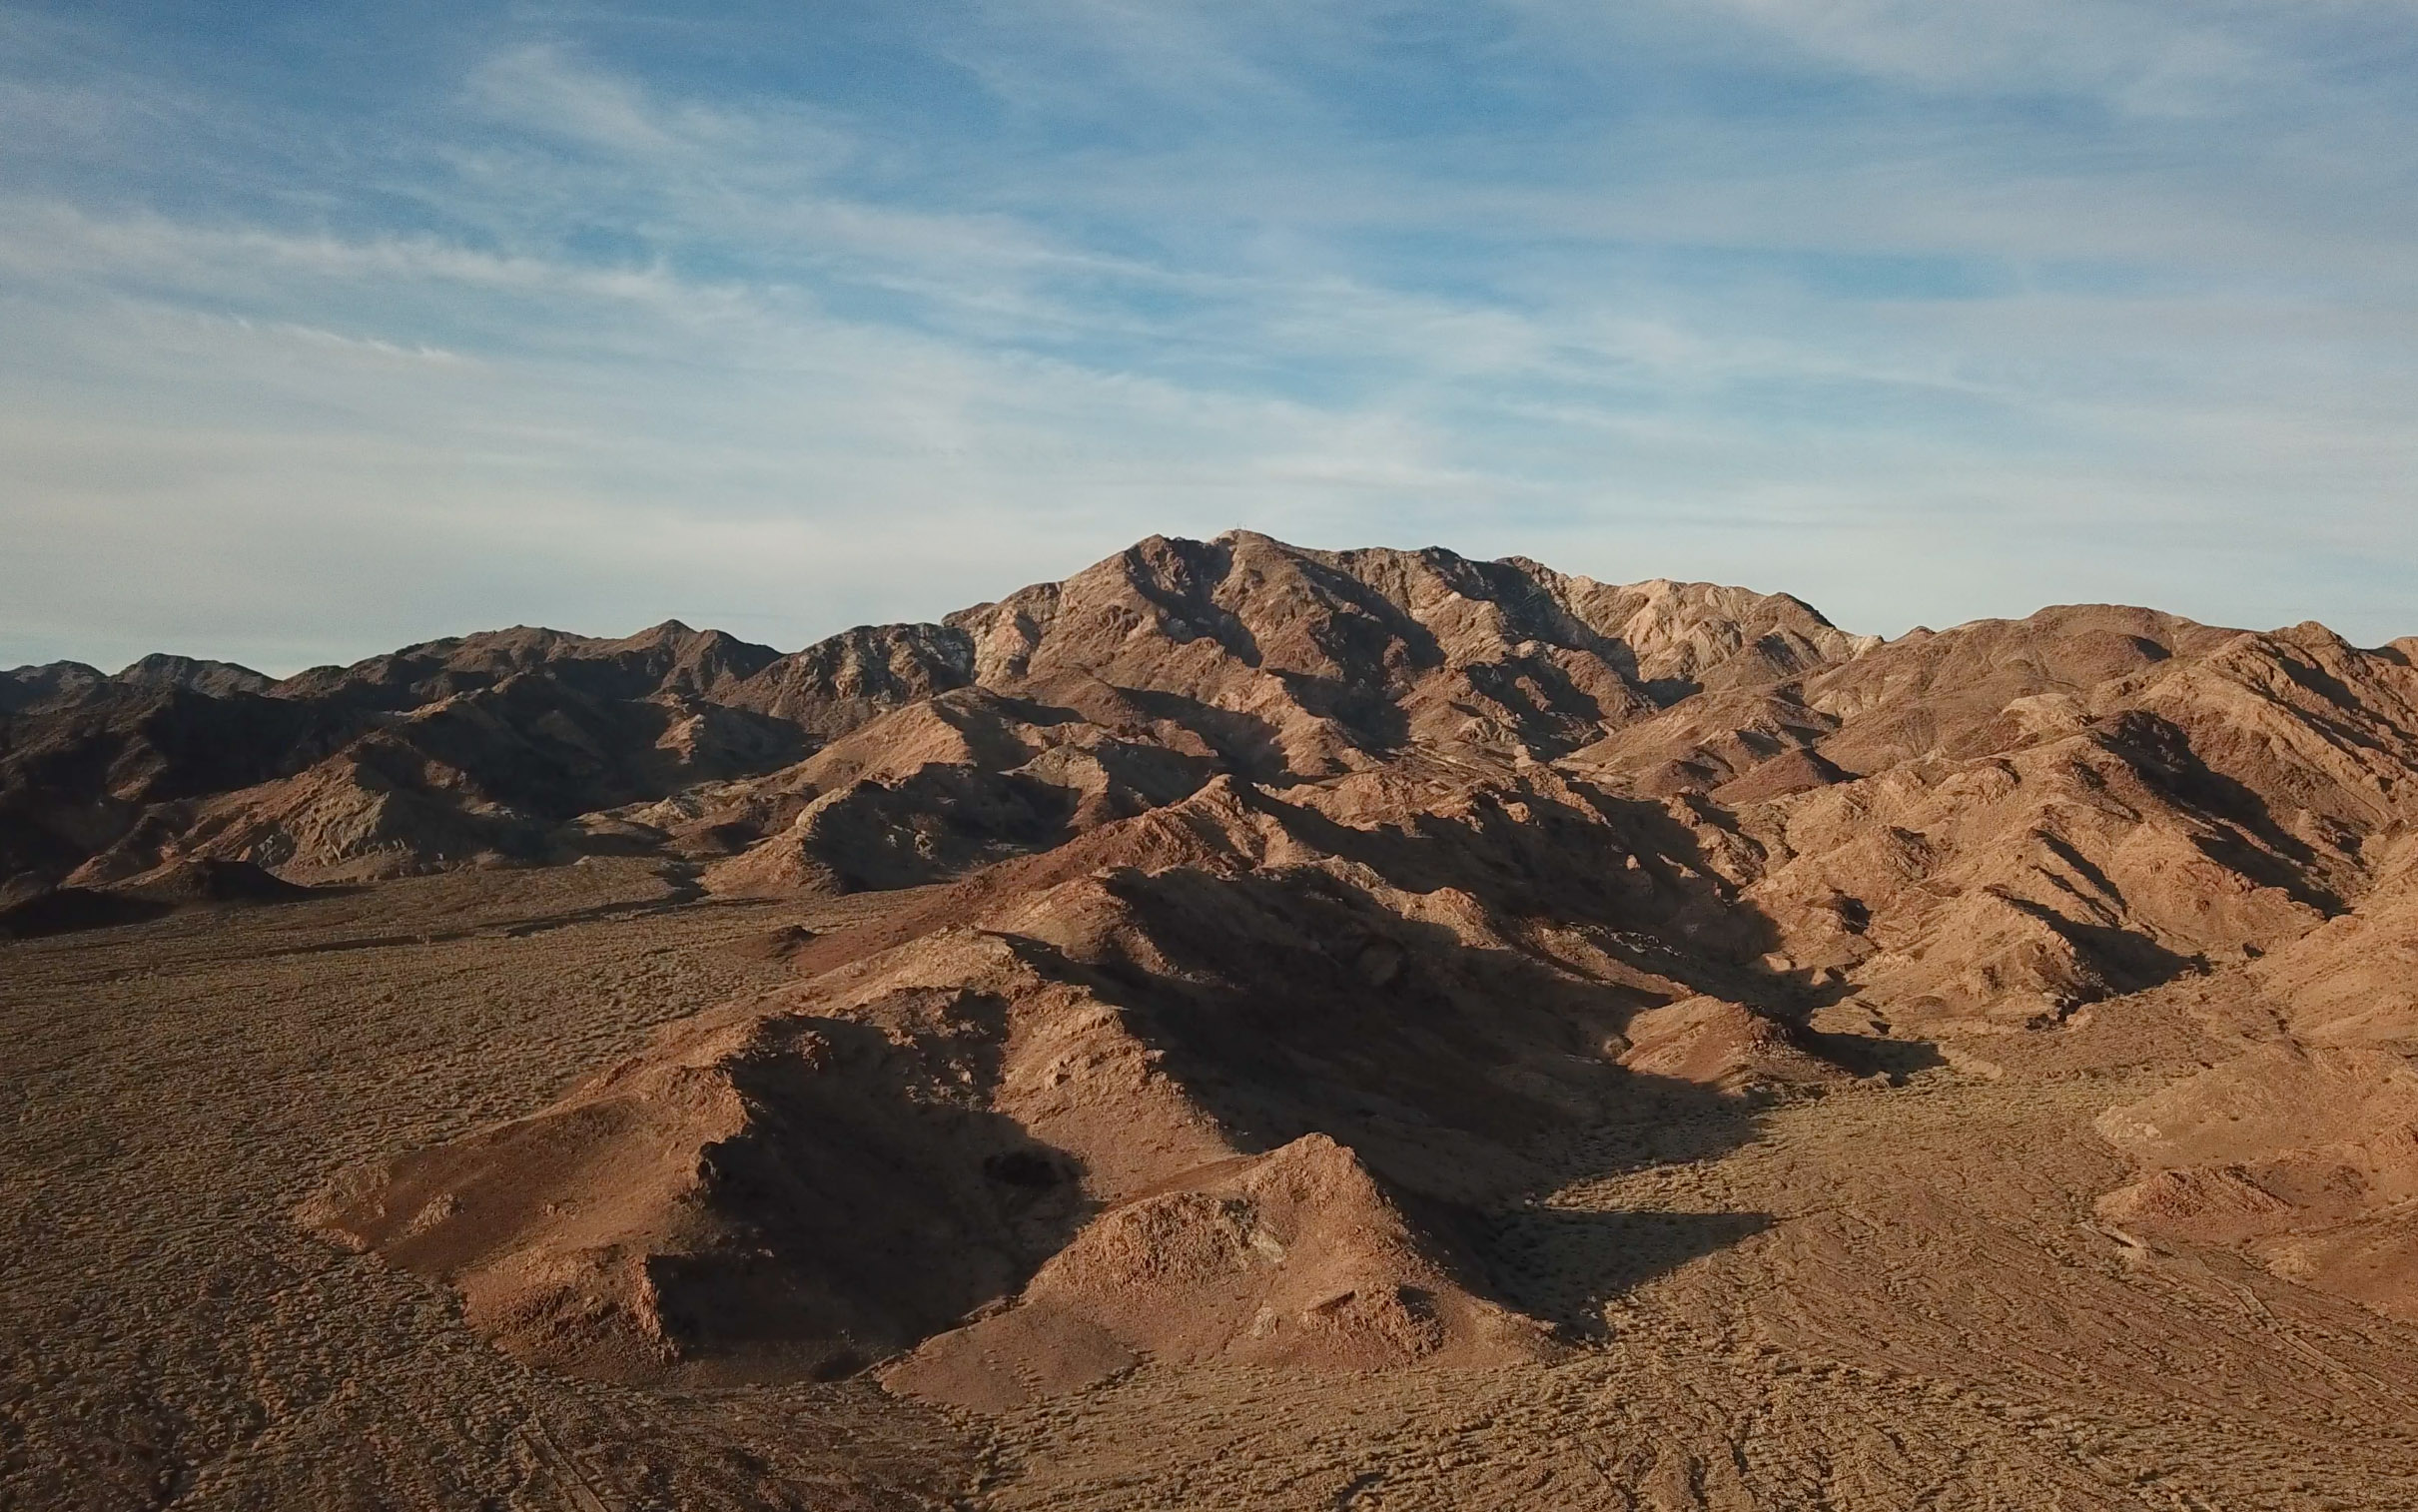 The California desert mountains outside of Amboy.